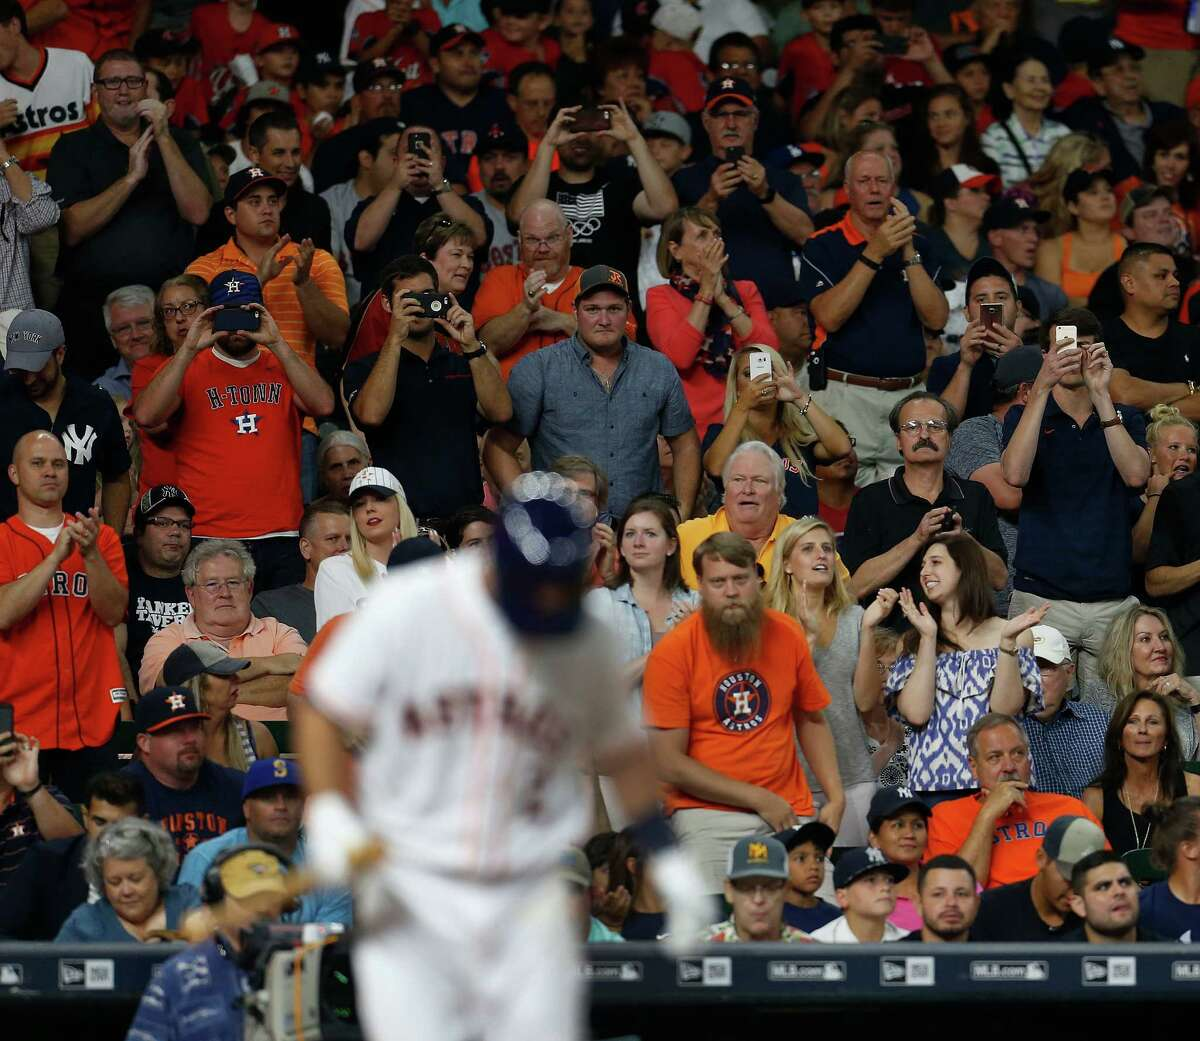 Fans stand and cheer as Houston Astros third baseman Alex Bregman (2) takes his first Major League at bat during the second inning of an MLB game at Minute Maid Park, Monday, July 25, 2016, in Houston.